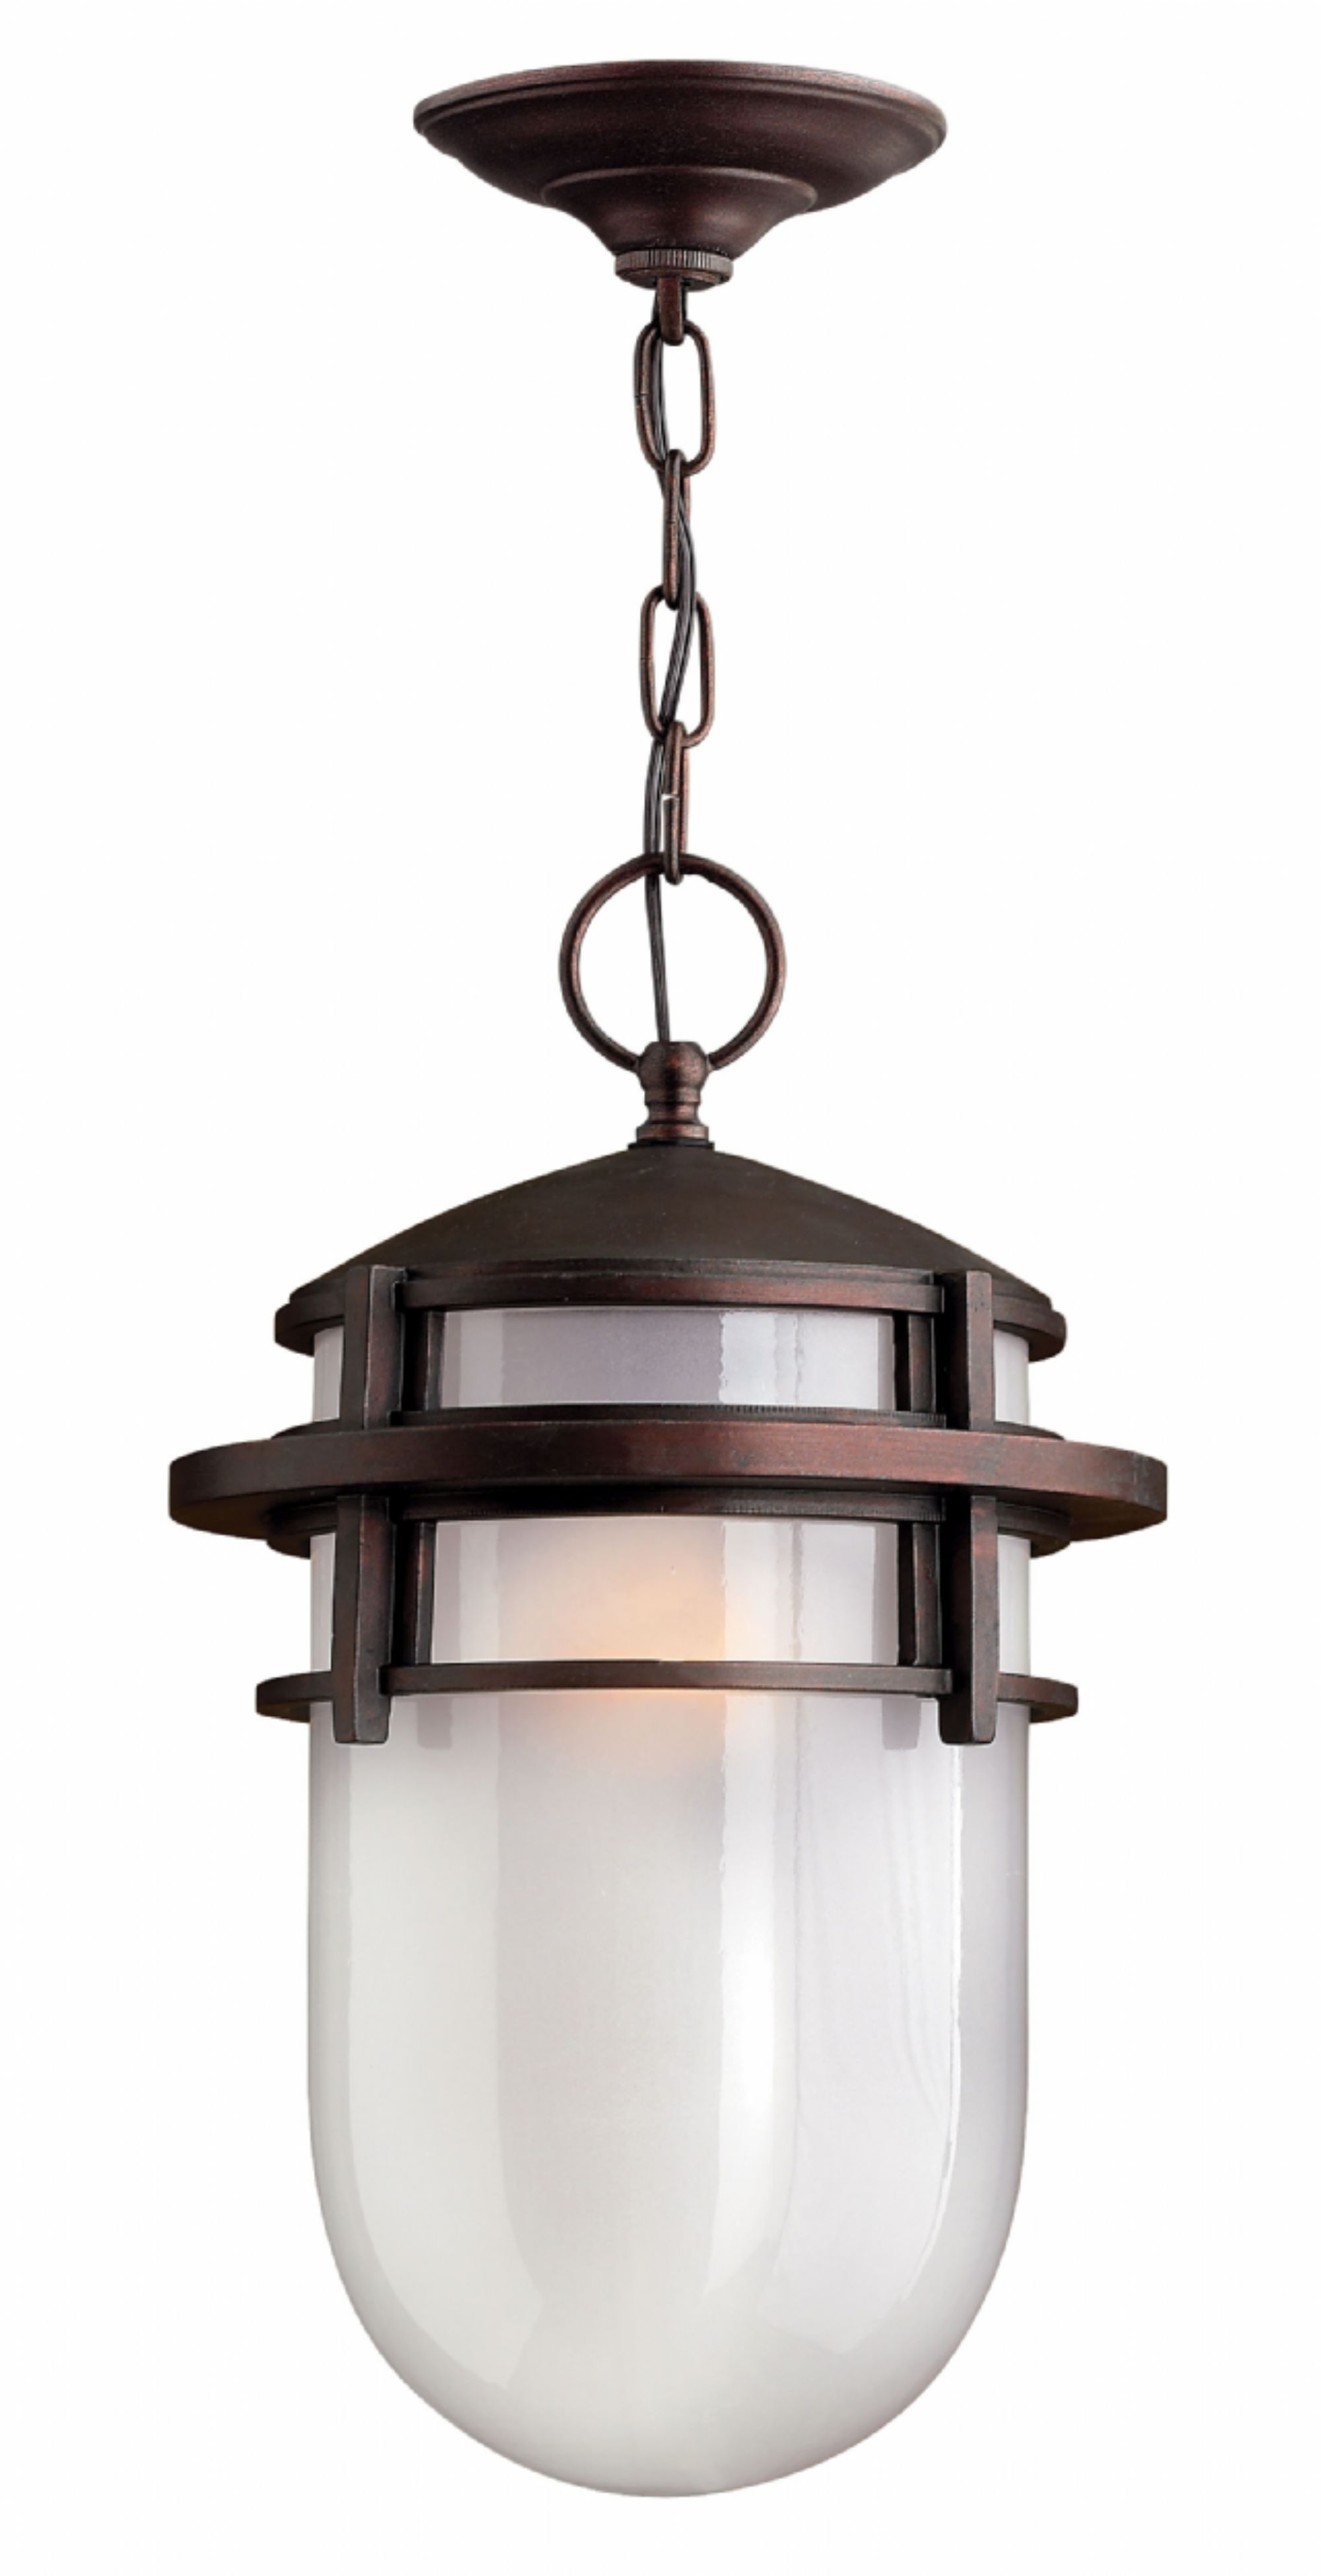 Hinkley Outdoor Ceiling Lights Regarding Widely Used Victorian Bronze Reef > Exterior Ceiling Mount (View 11 of 20)